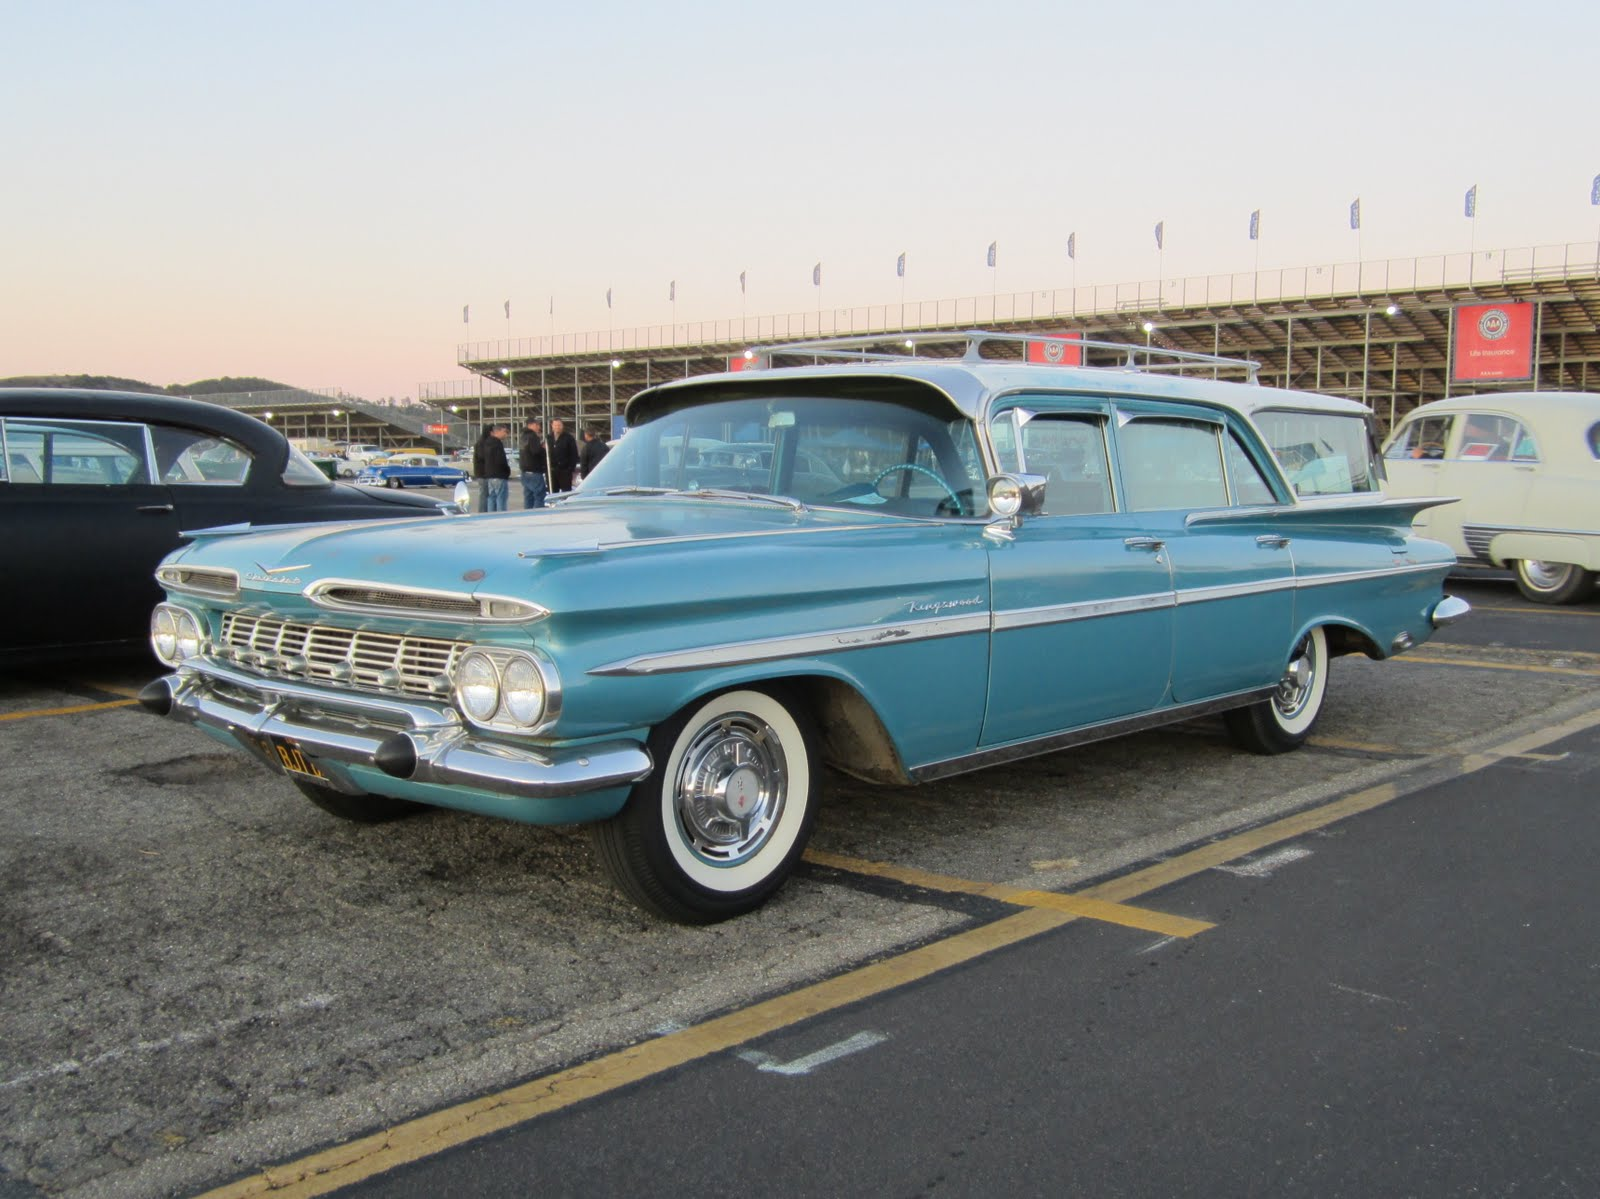 Covering Classic Cars : Pomona Swap Meet and Motor 4 Toys Car Show